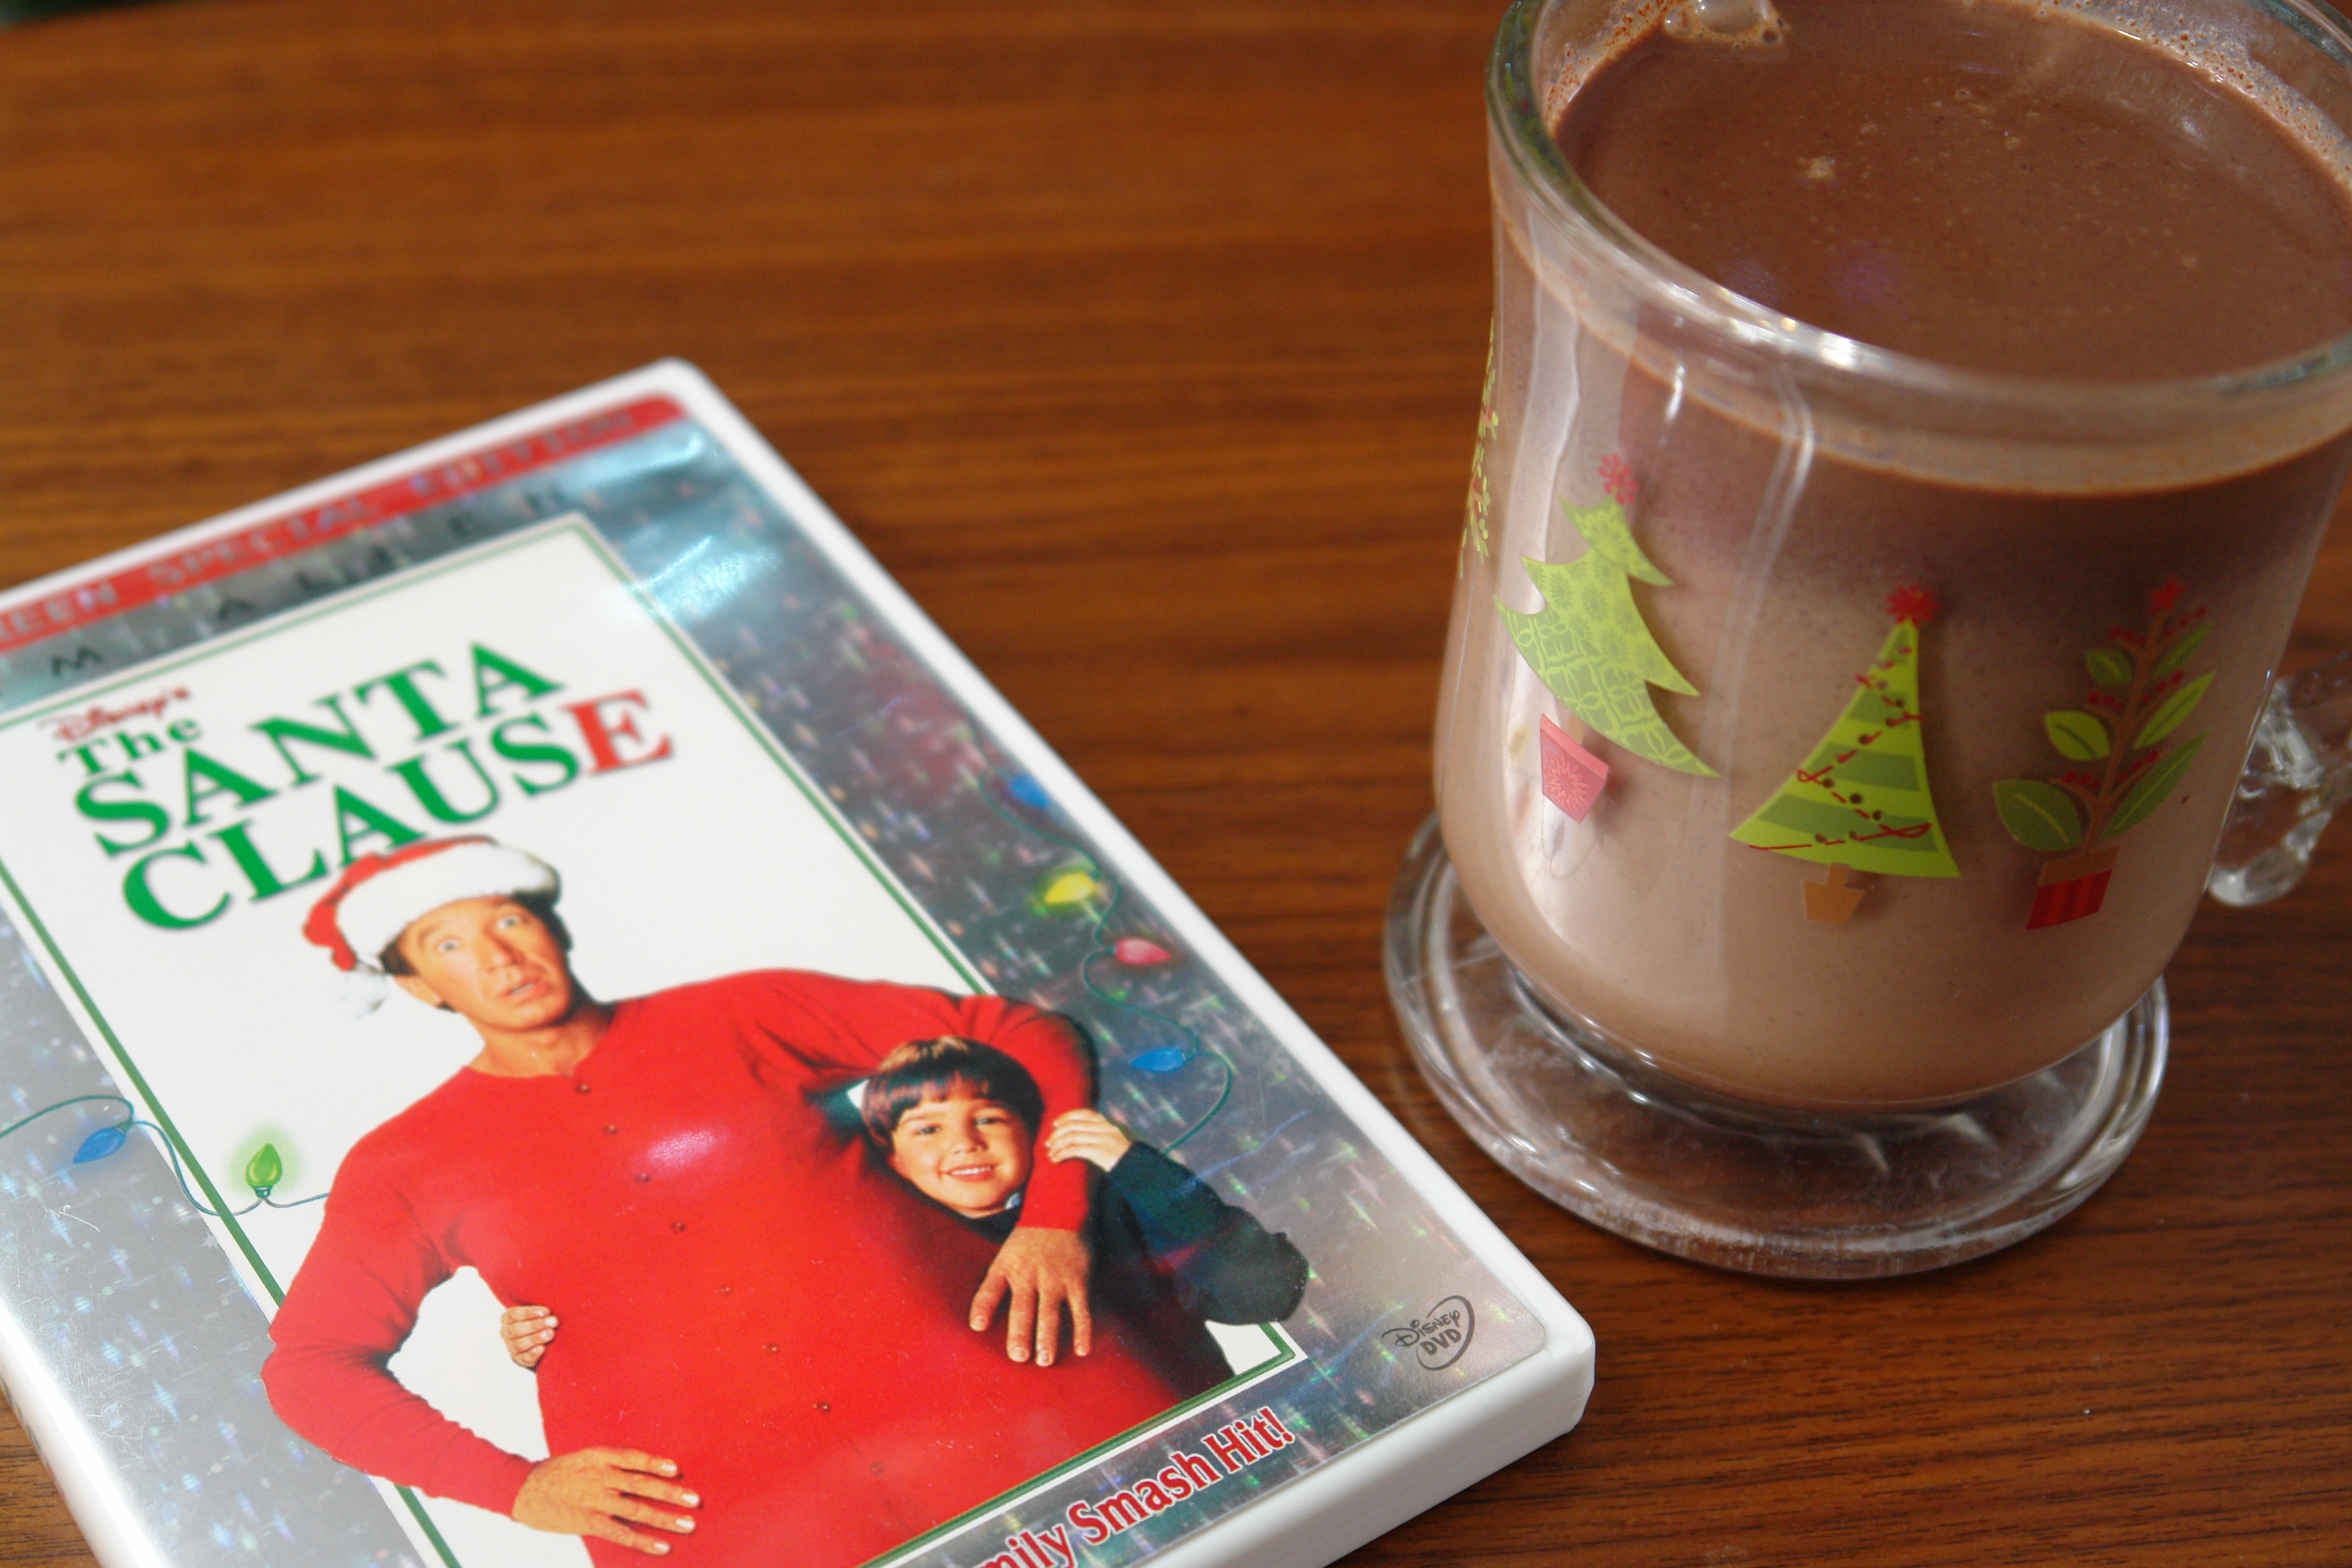 Hot chocolate in Christmas mug with DVD copy of The Santa Clause